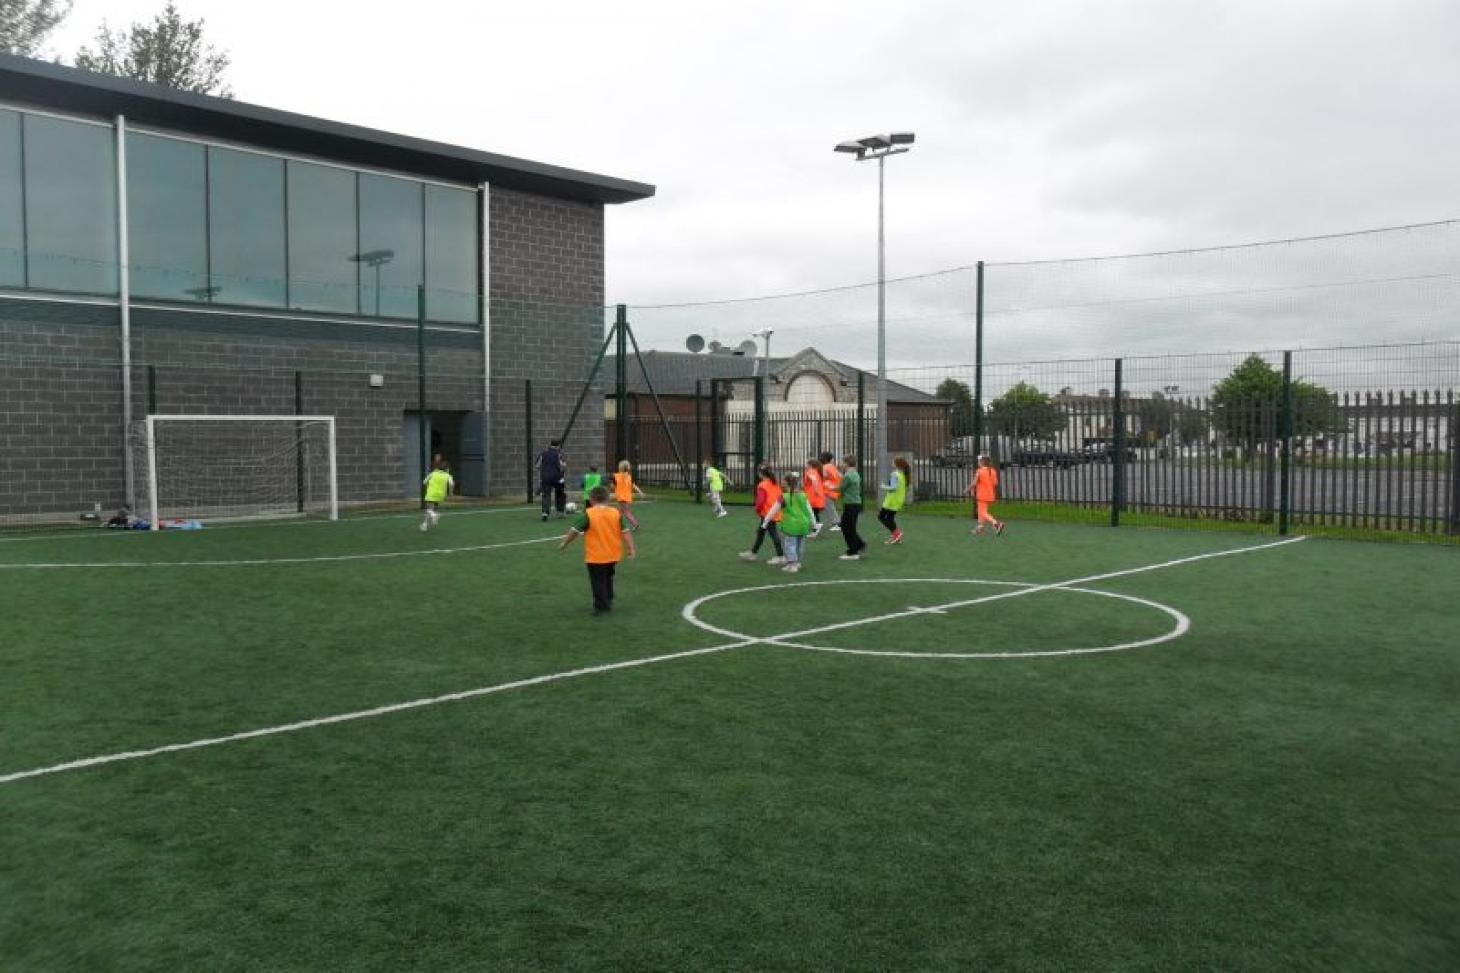 Mountview Youth & Community Centre 5 a side | Astroturf football pitch